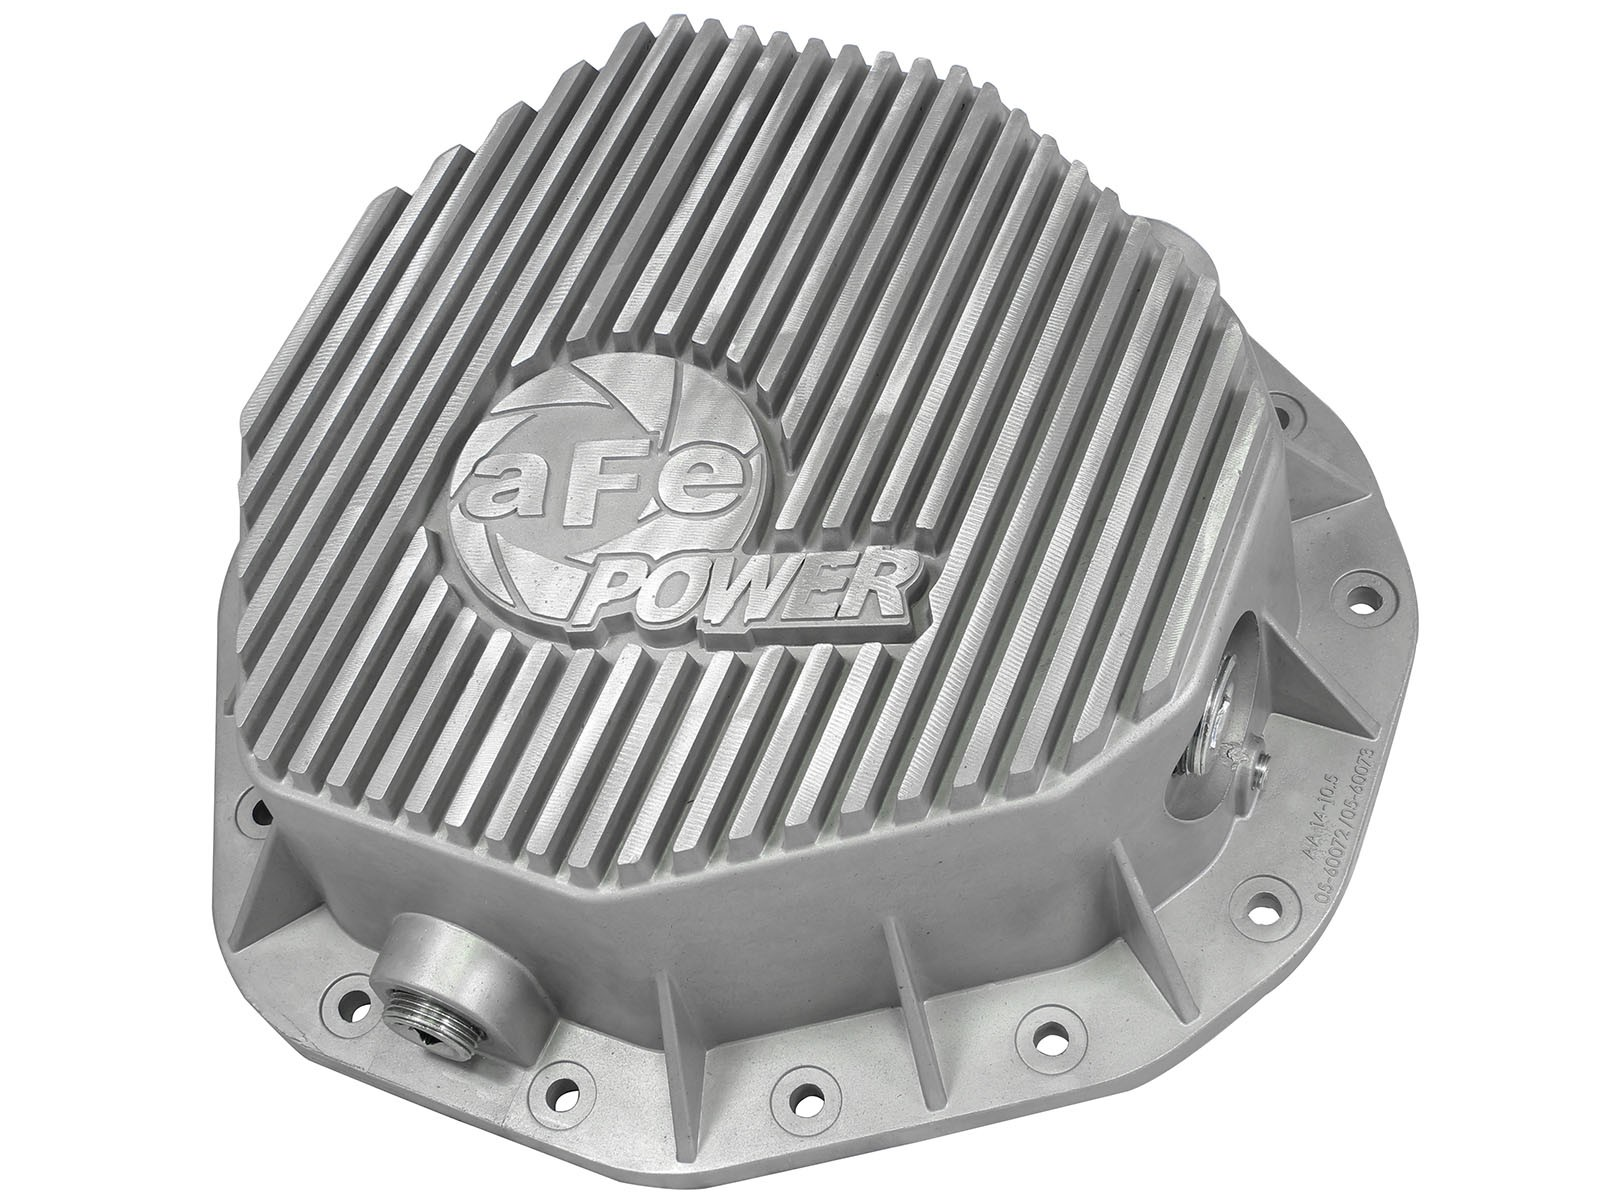 aFe POWER 46-70090 Rear Differential Cover, Raw Finish; Street Series